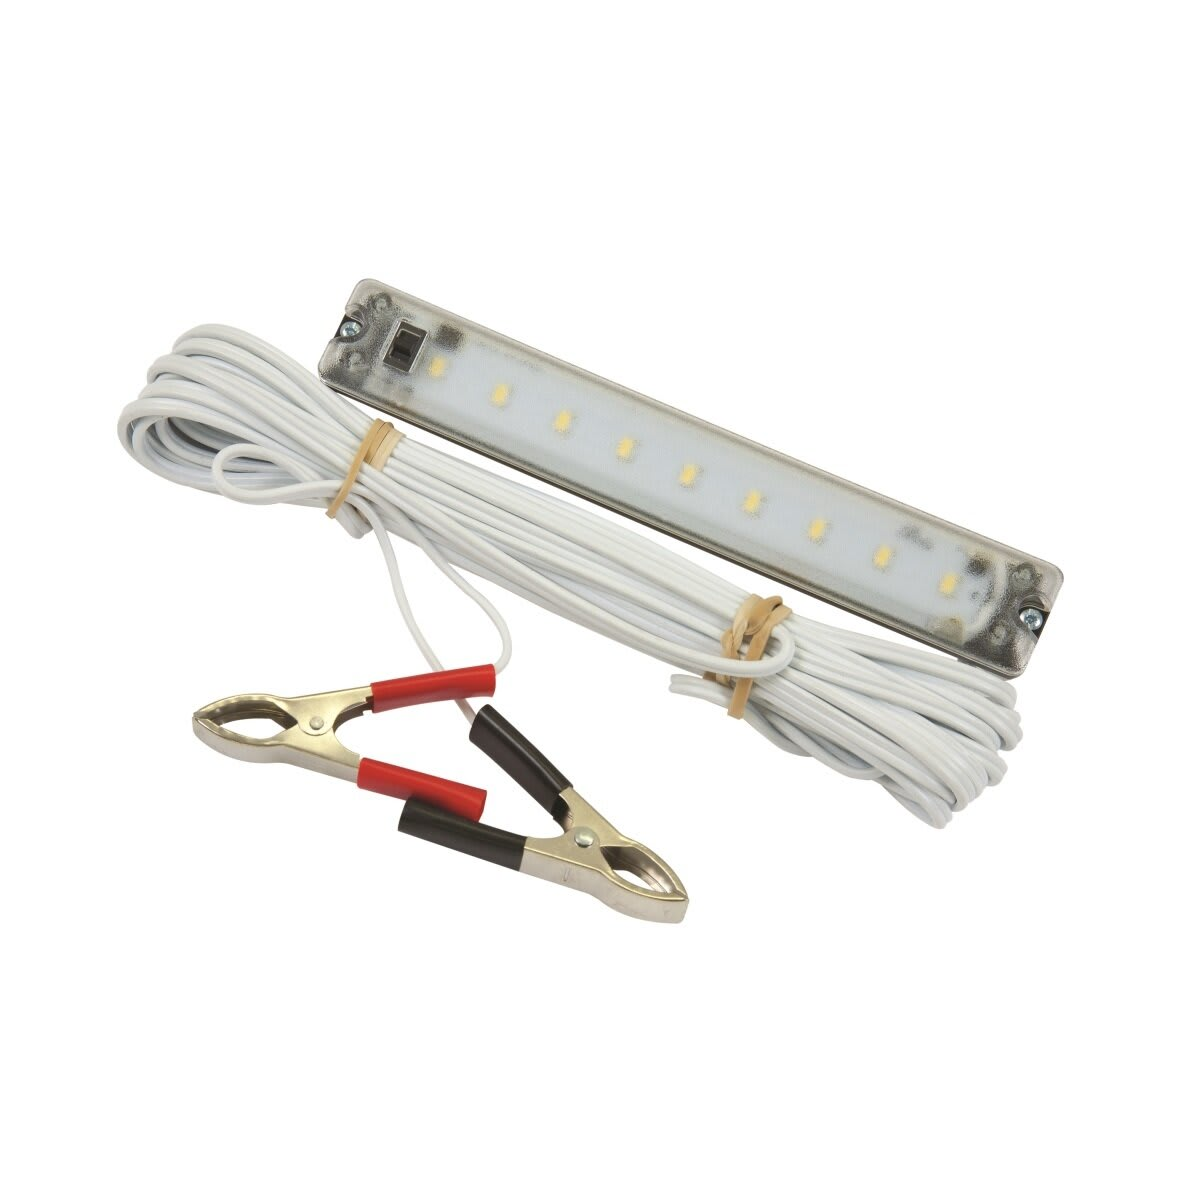 National Luna 9Led Clip-On Light with Clamps